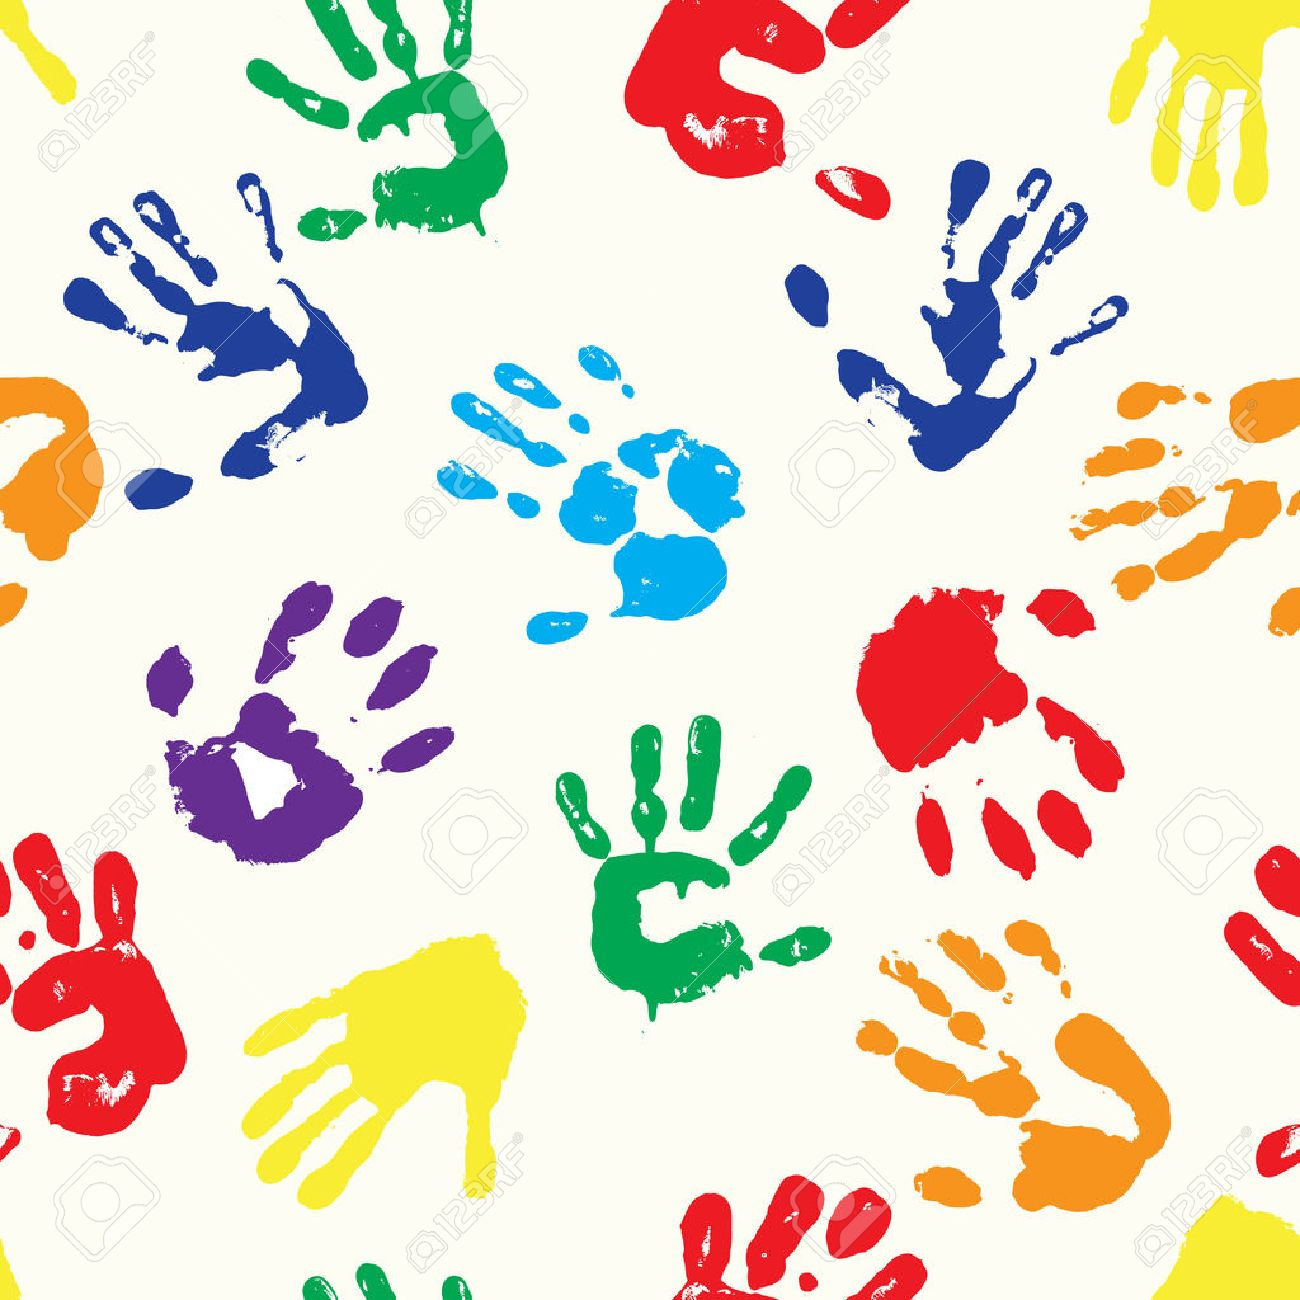 multicolored fingerprints with the colors of rainbow - 51212778